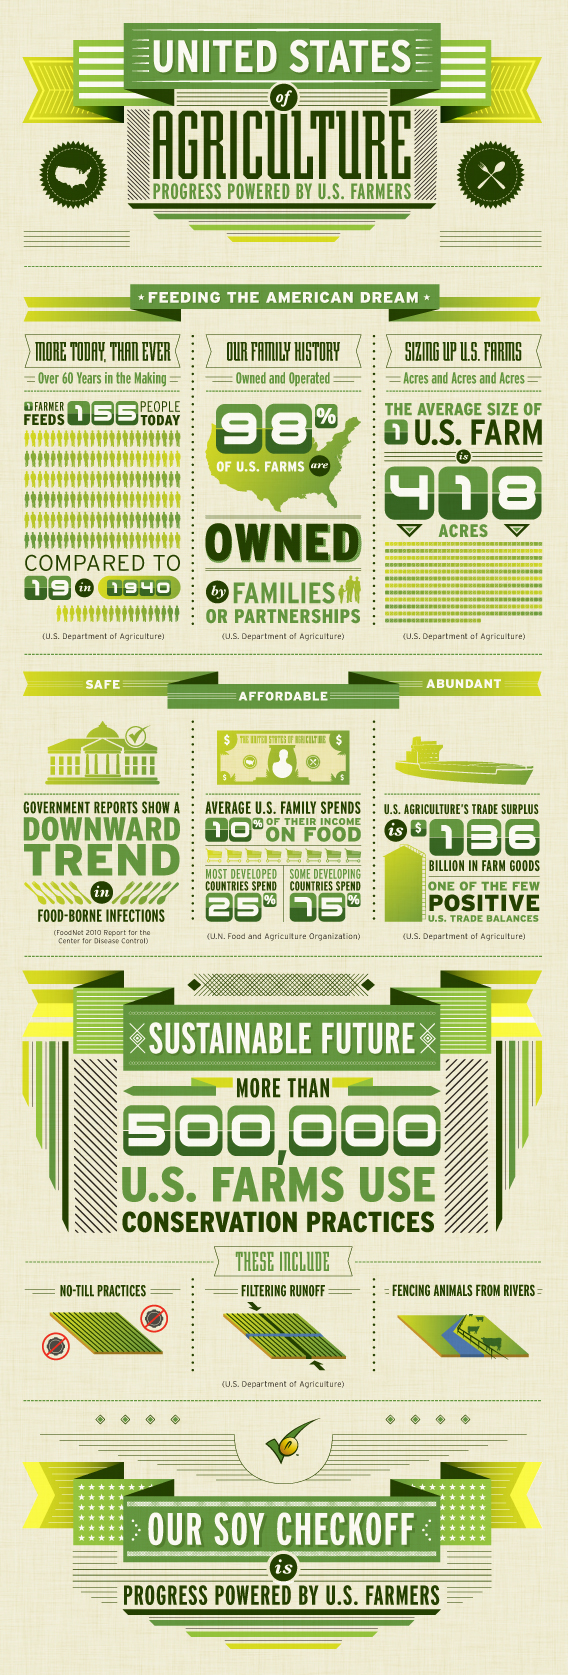 44321_FINAL_Food_System_Infographics.jpg